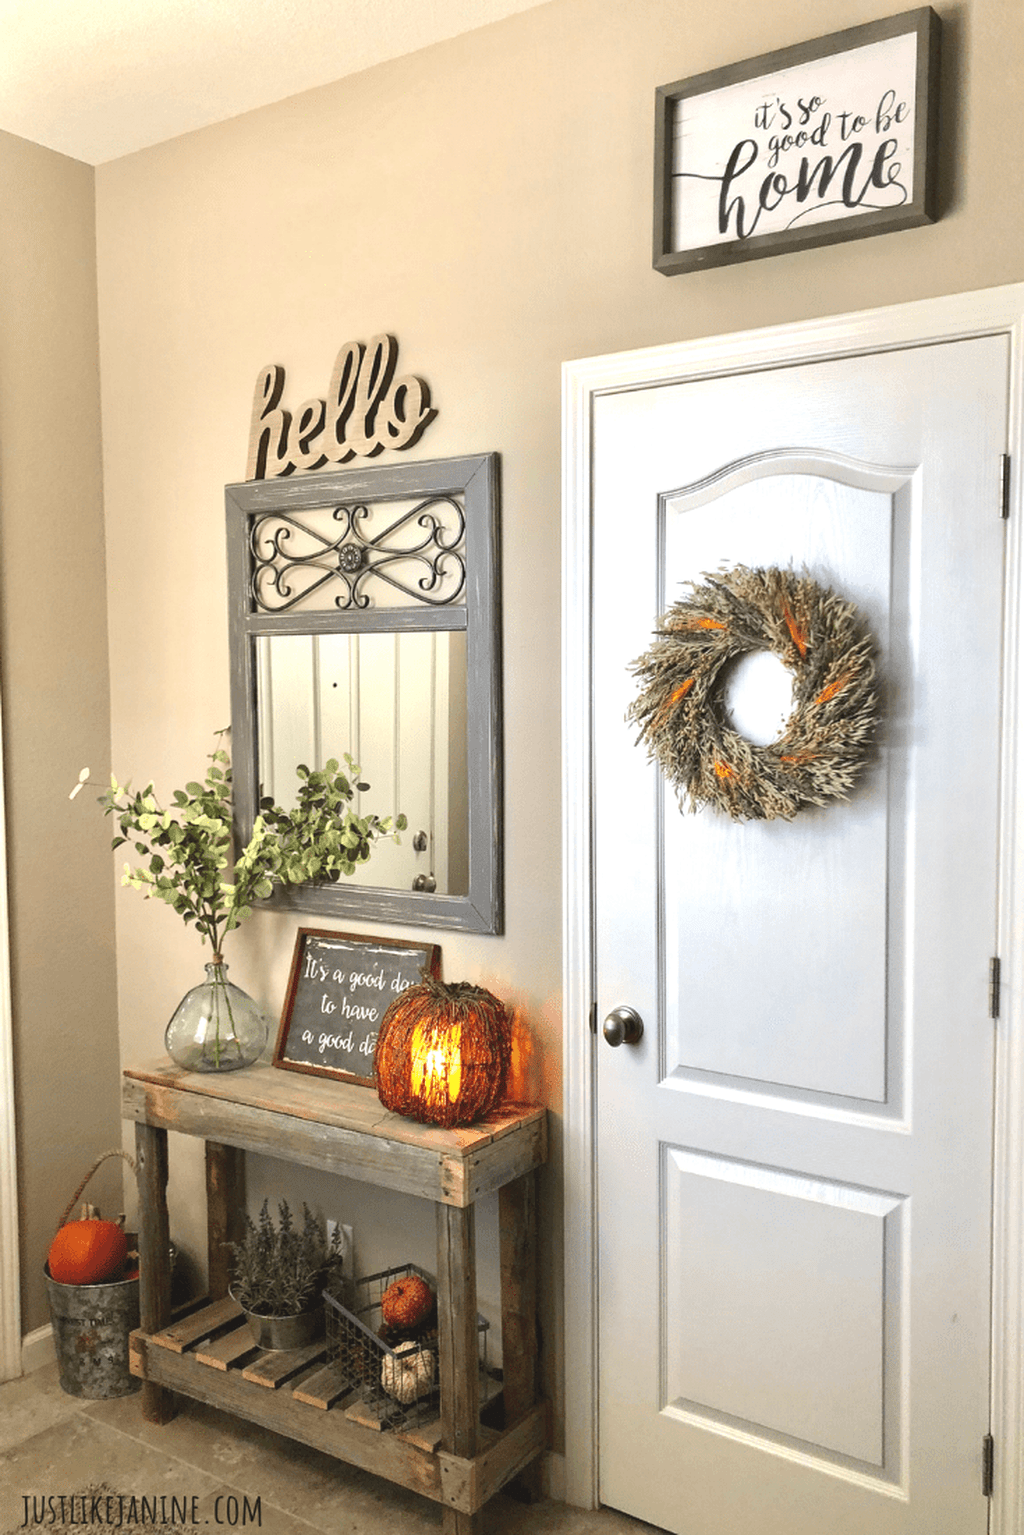 35 Amazing Small Entryway Decor Ideas Magzhouse Entryway Decor